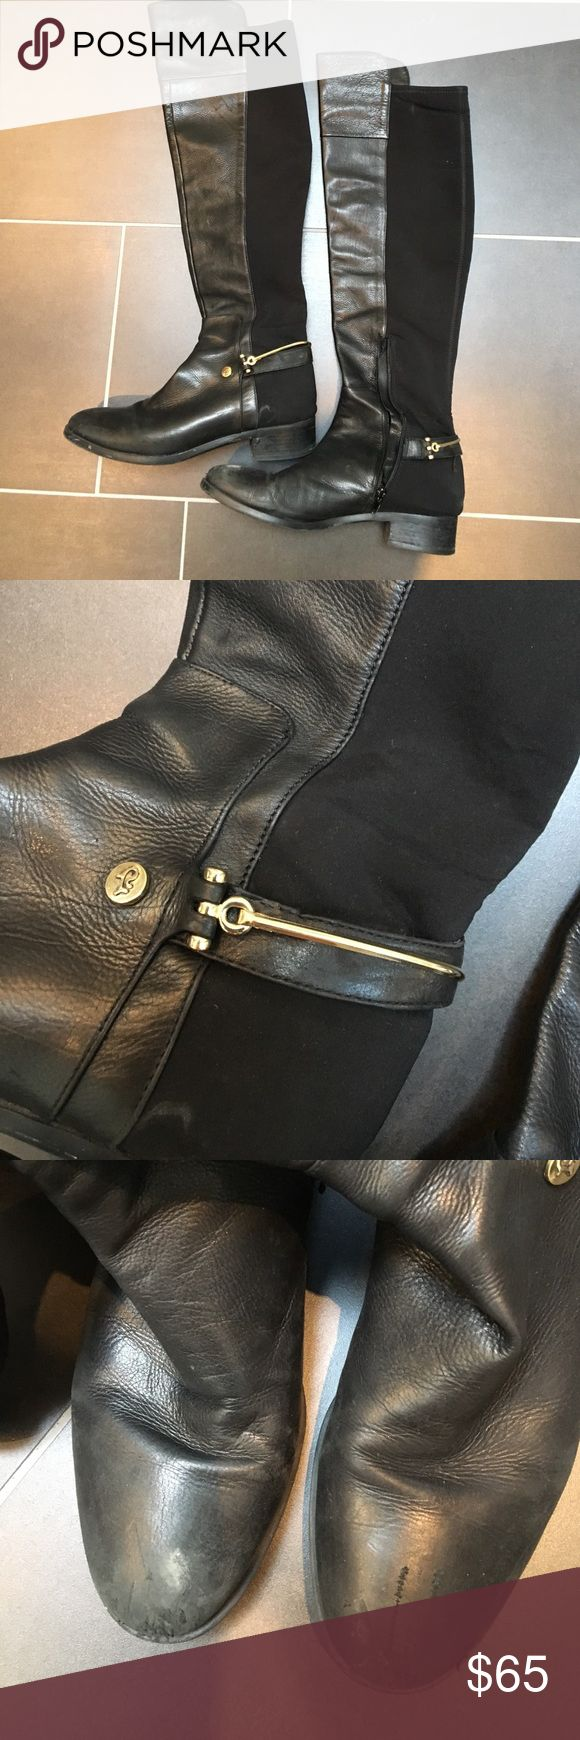 Leather Riding Boots Leather riding boots with stretchy cloth detail on the back and gold hardware. These are in used condition as indicated in the photo, but the leather can be easily polished and repaired, these boots still have a lot of life left in them! Offers are welcome ♥️ Ivanka Trump Shoes Over the Knee Boots